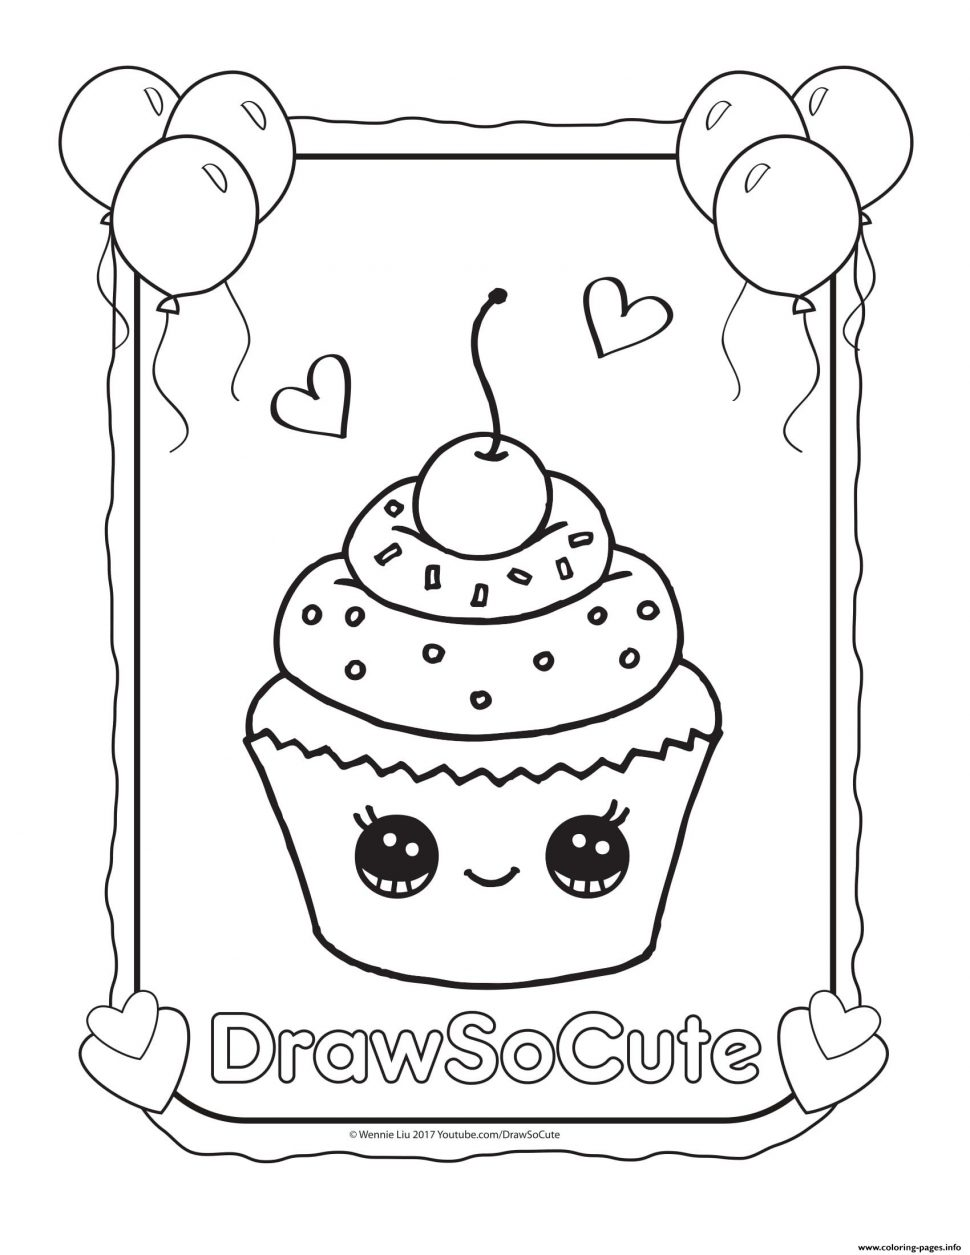 Cute Cupcake Drawing At Getdrawings Com Free For Personal Use Cute